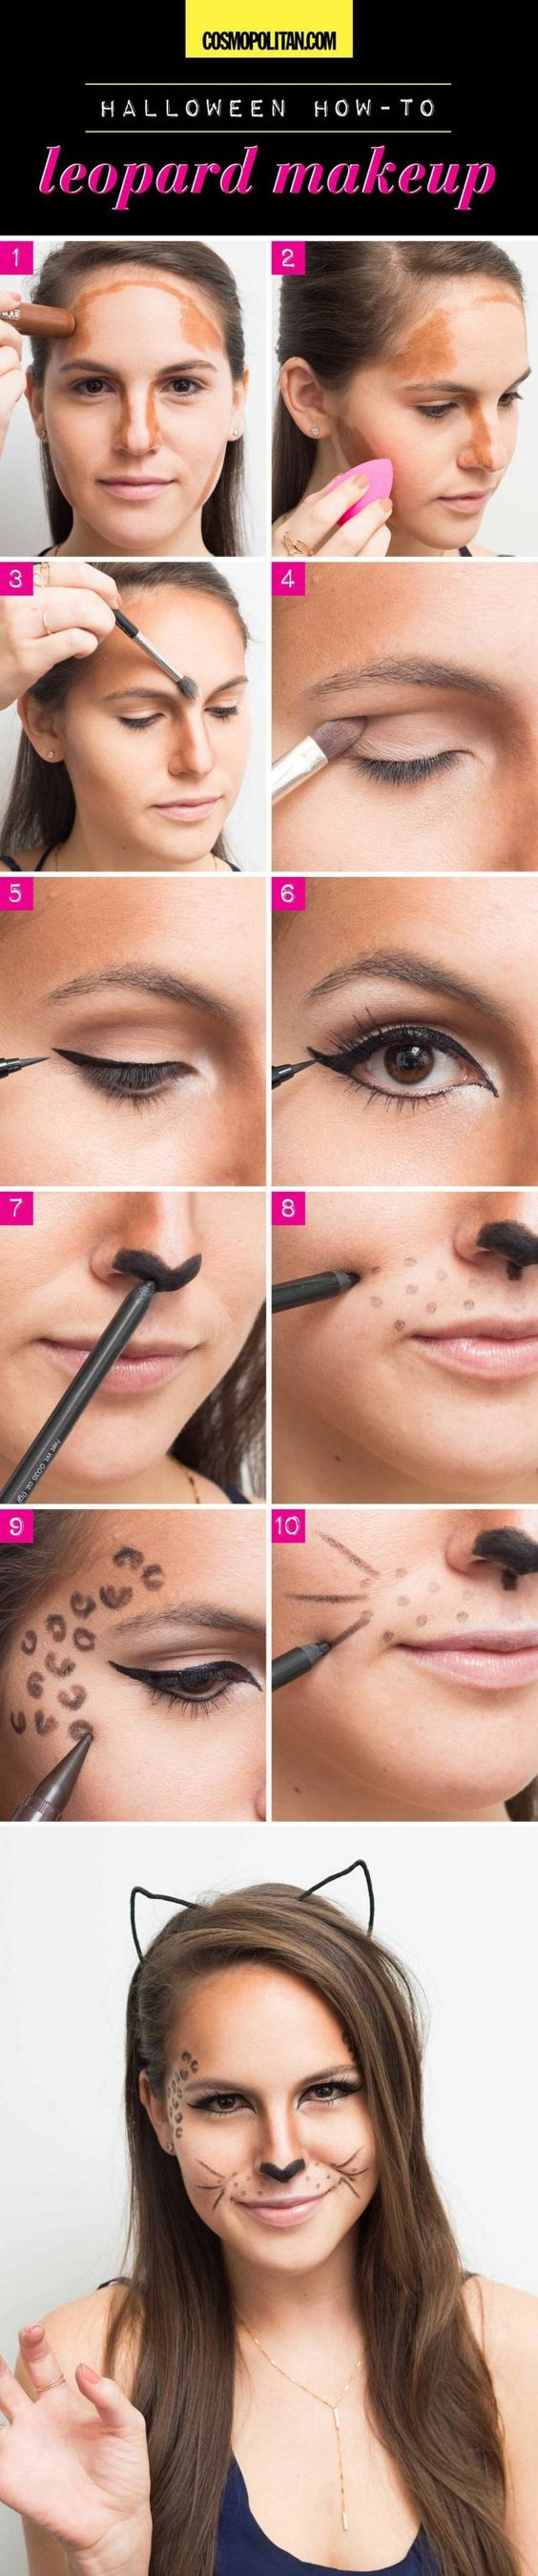 best images about beauty costume makeup u ect on pinterest